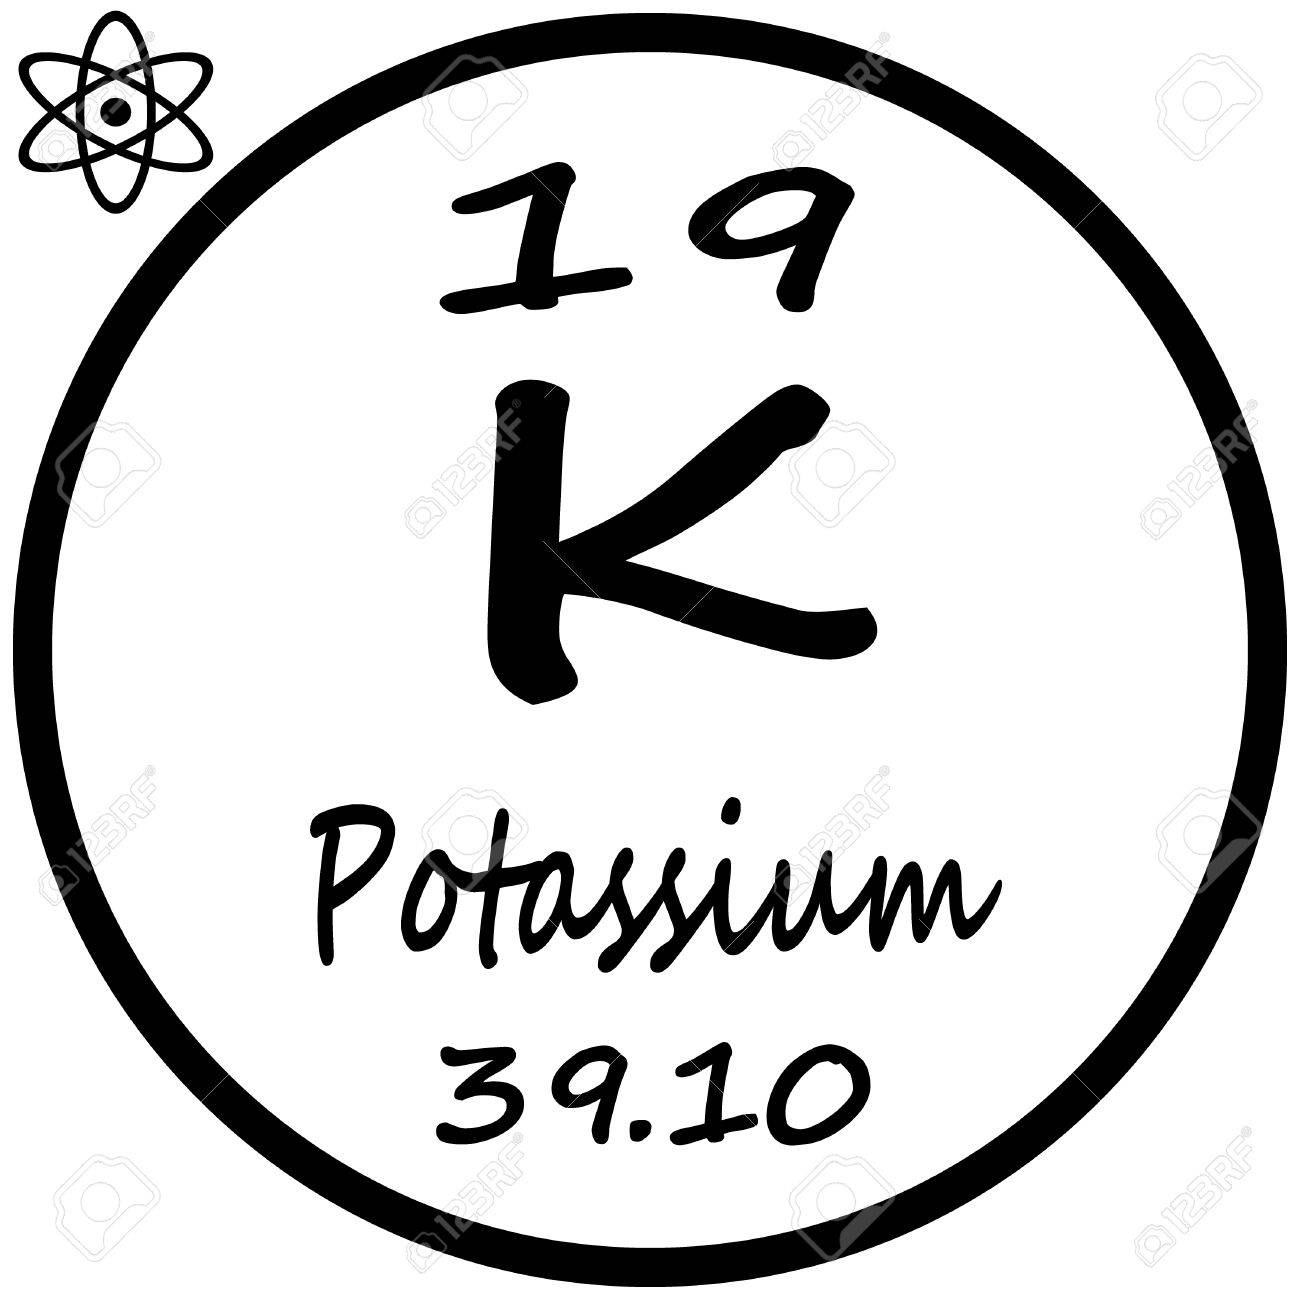 Periodic table of elements potassium royalty free cliparts periodic table of elements potassium stock vector 53482439 urtaz Images